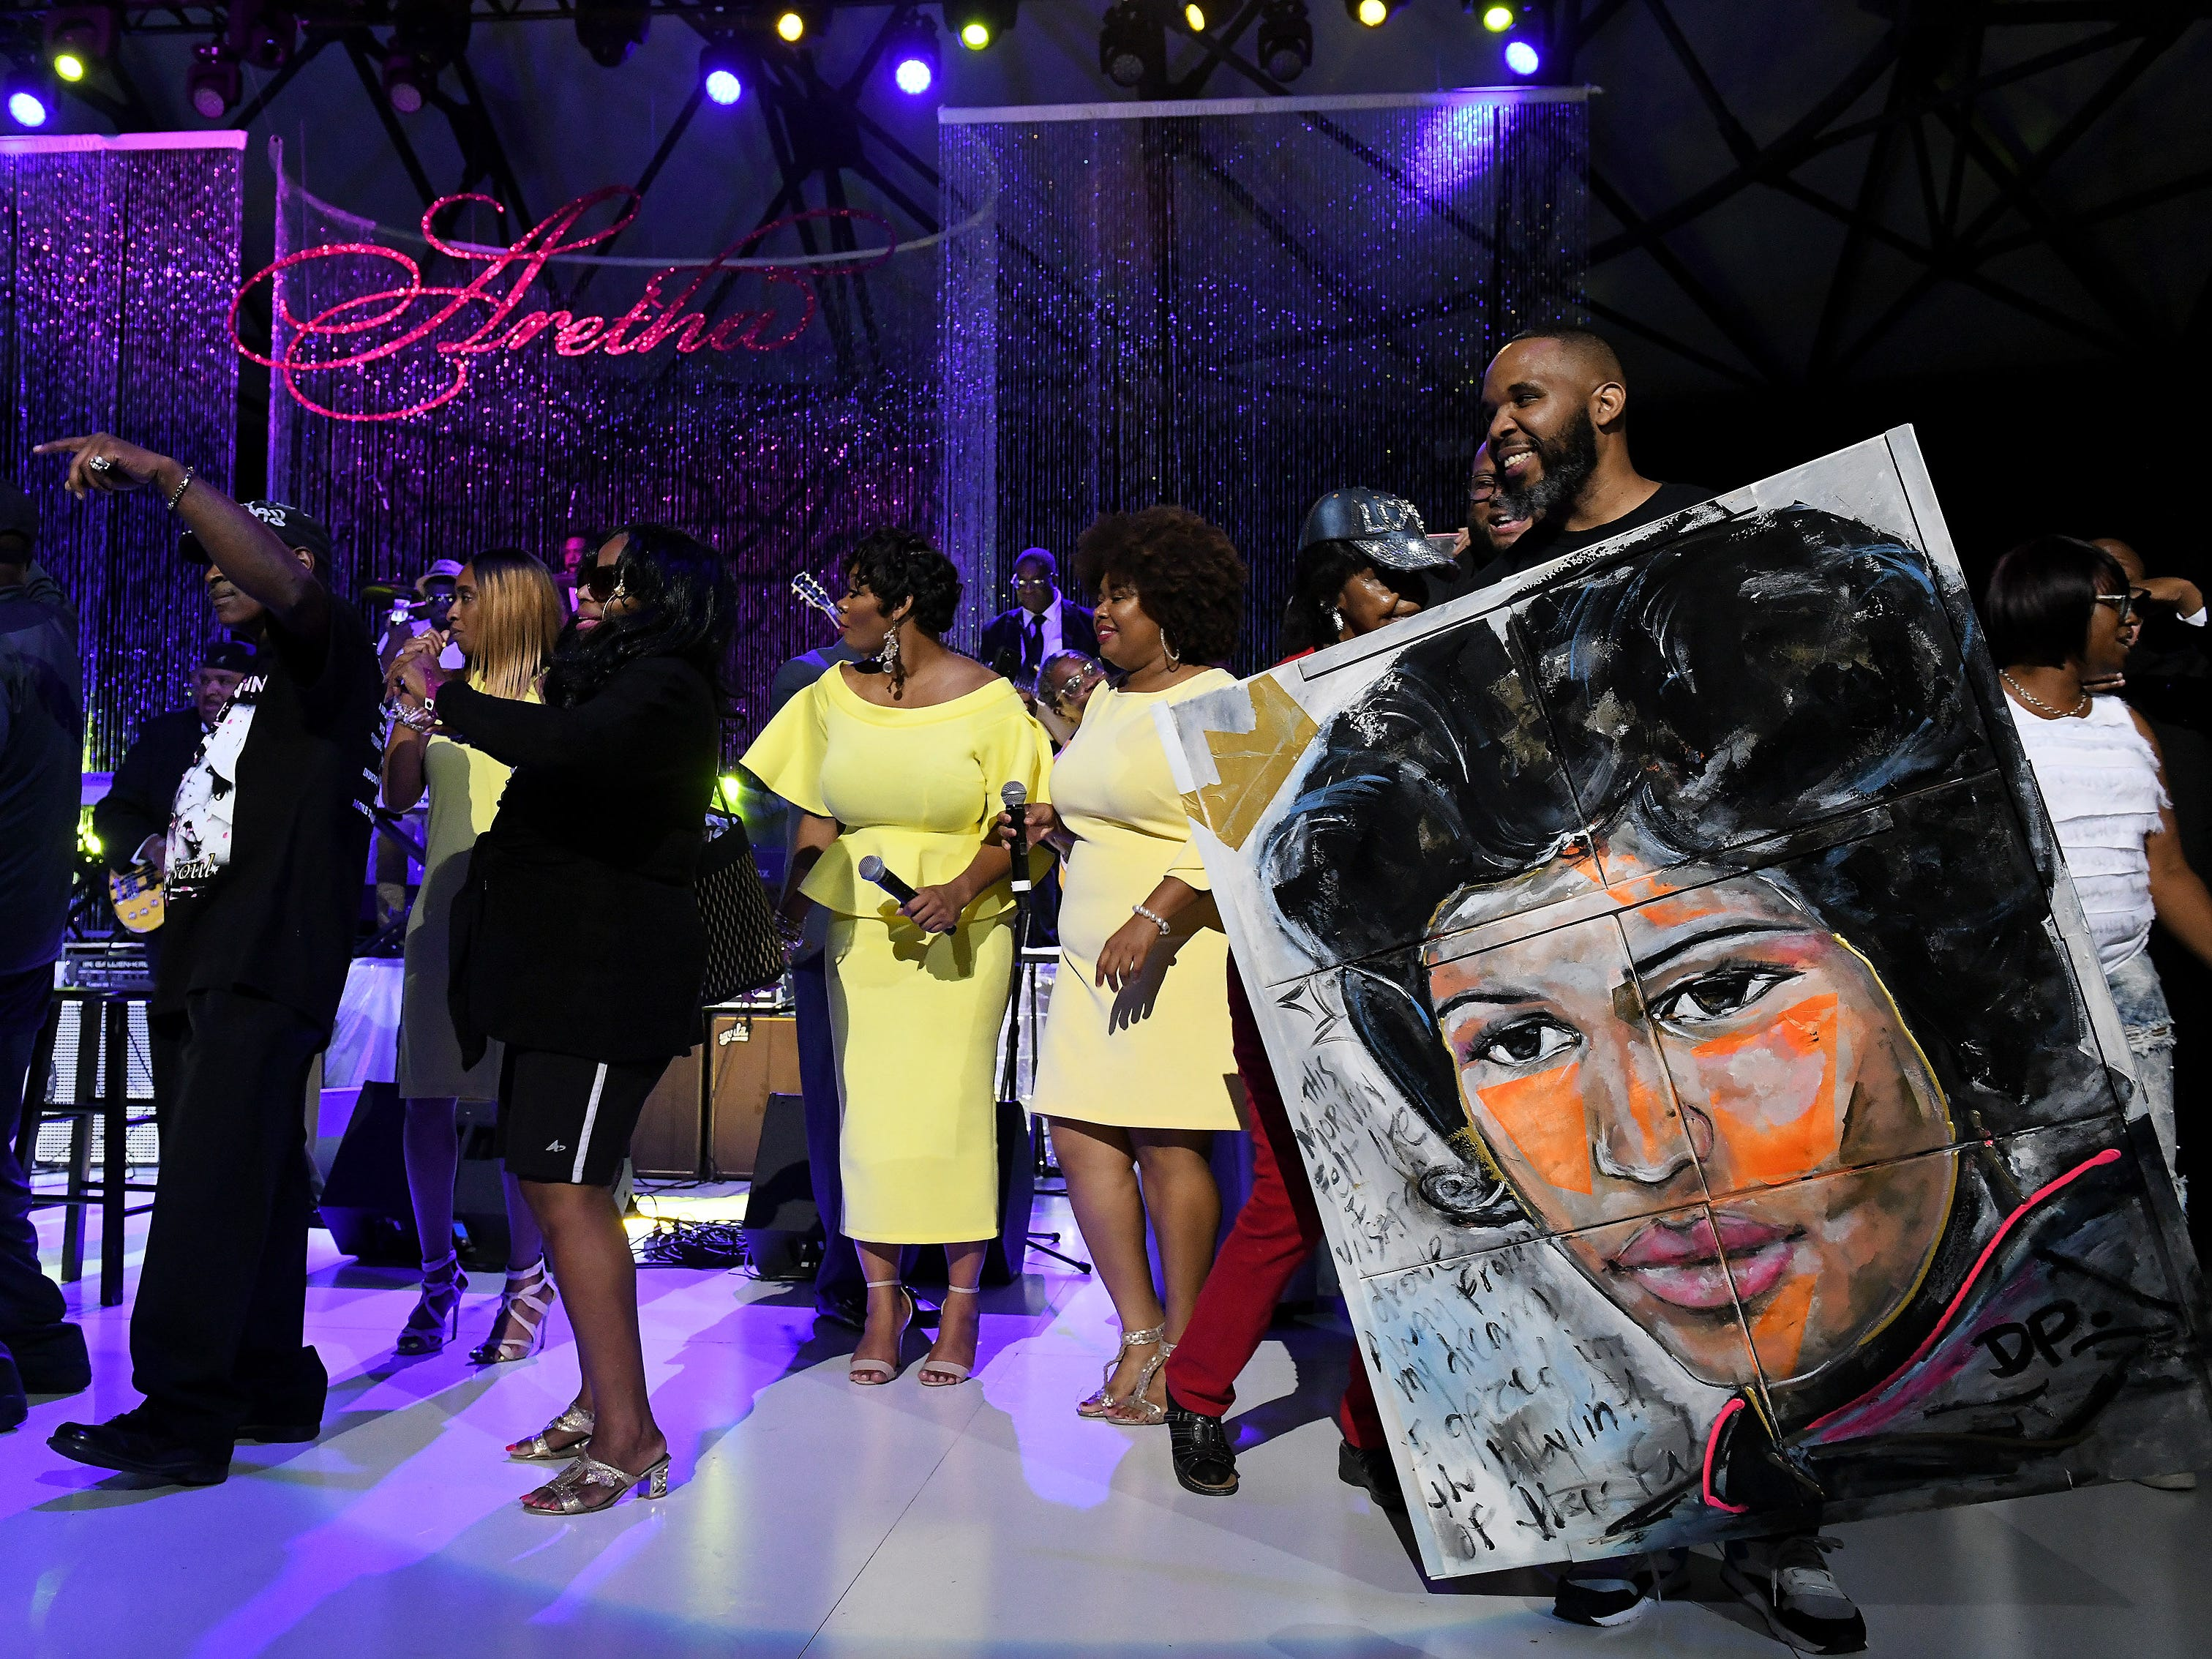 Artist Demont Pinder, right, from New York holds the painting he created during the concert.